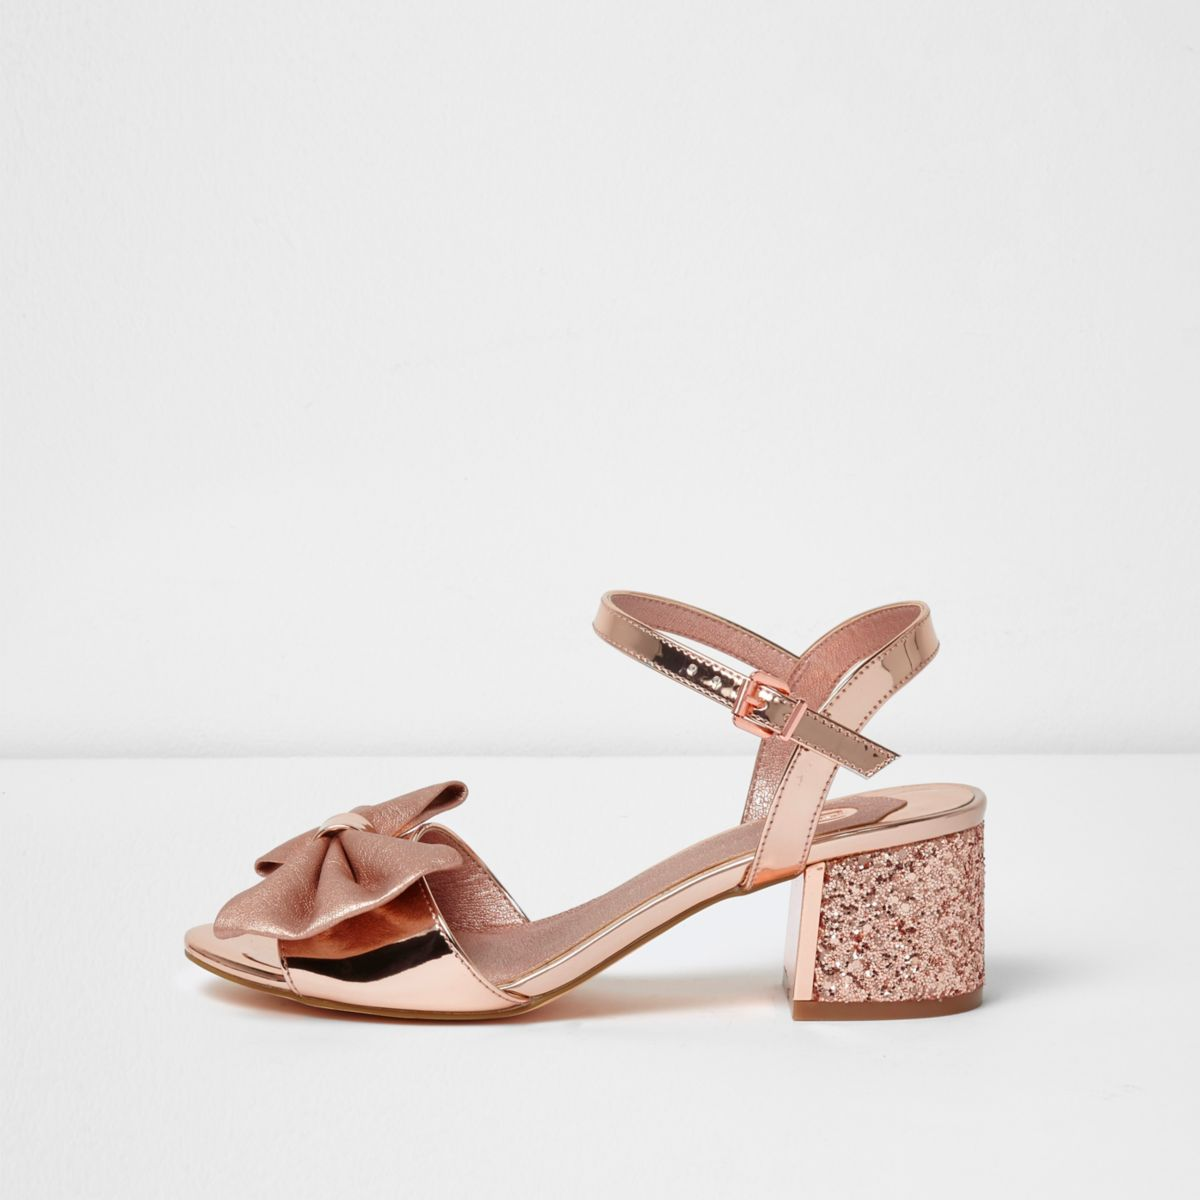 River Island Bow Sandals